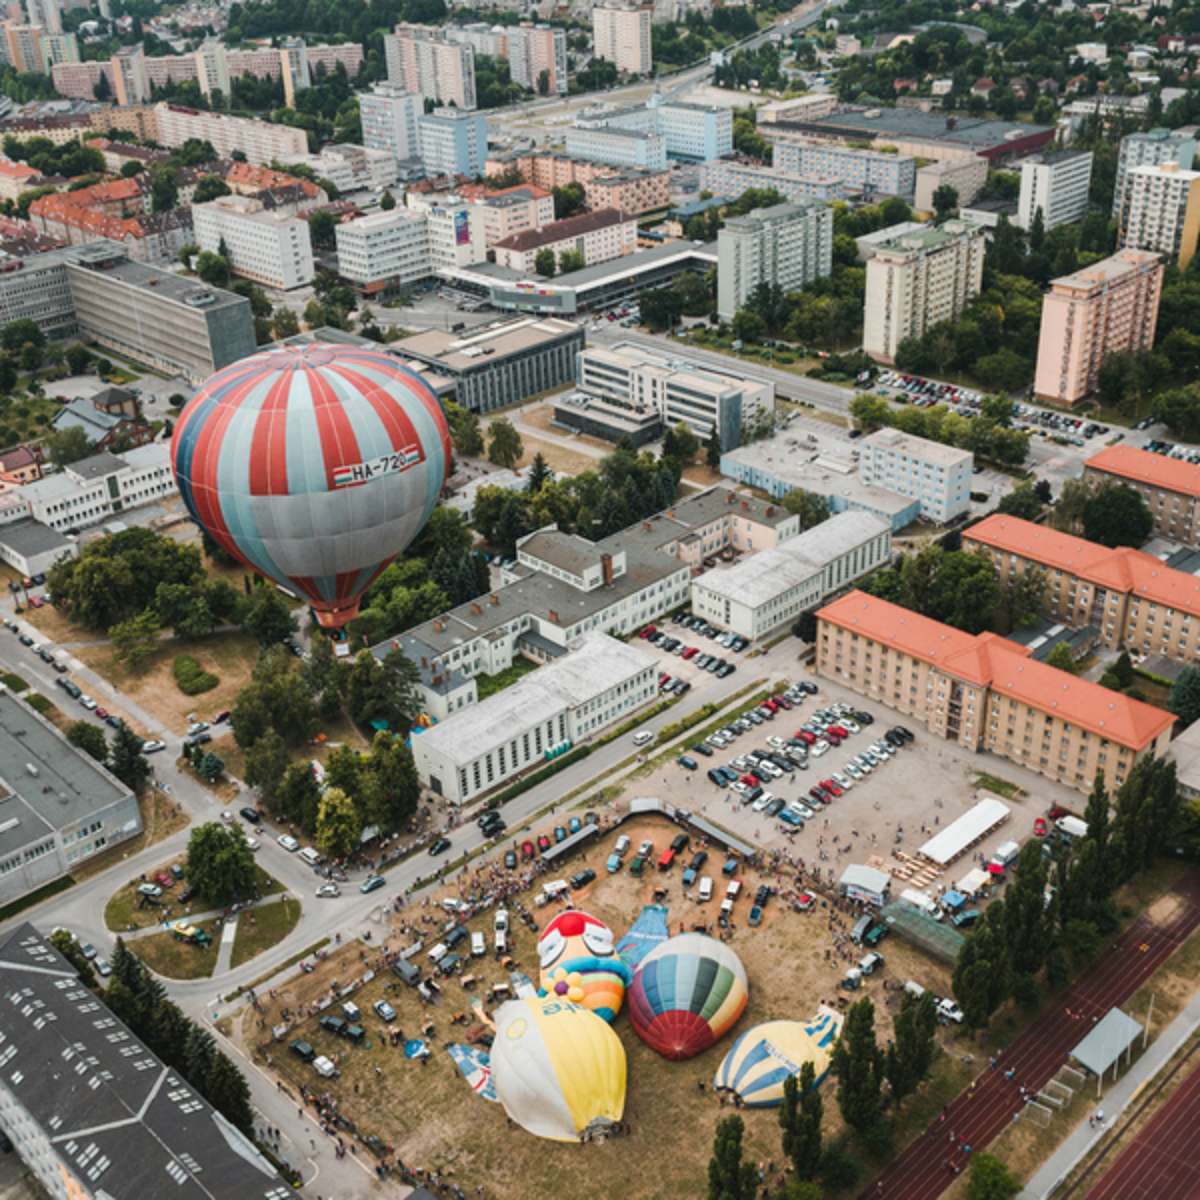 0faddc57f Hot air balloons will cover the Košice sky during the Balloon Fiesta on  June 5-